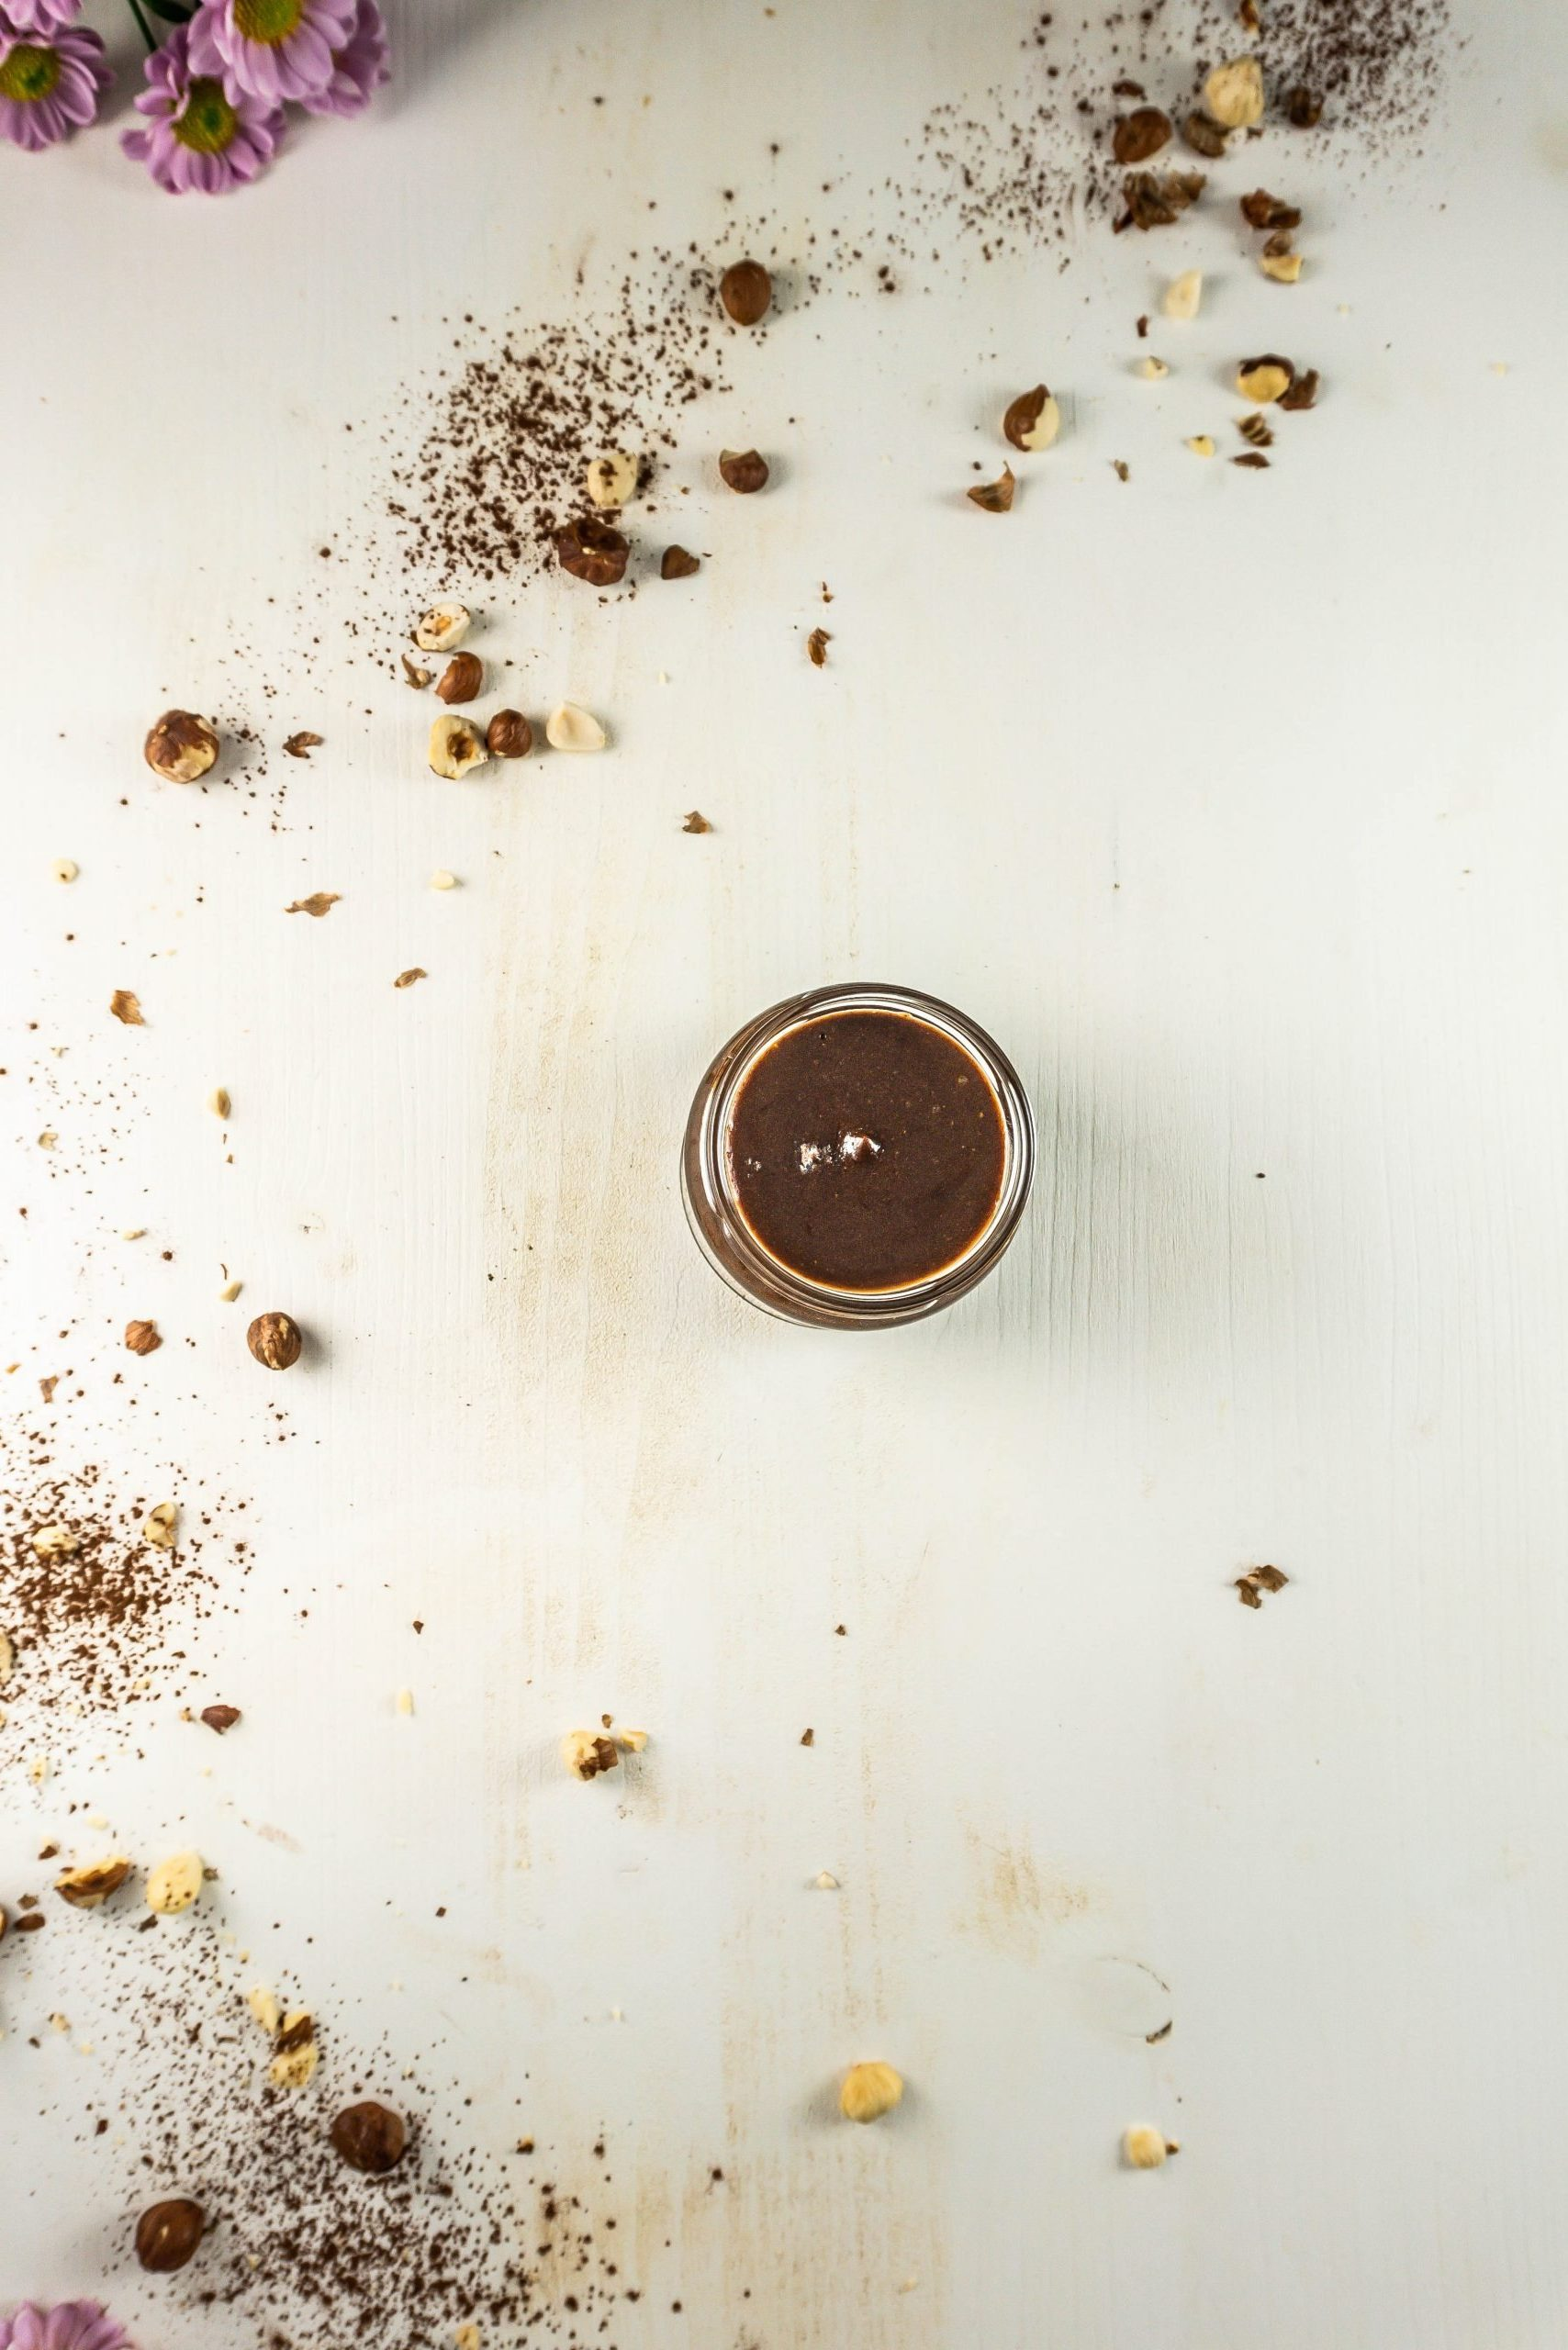 Vegan Chocolate Hazelnut Creme in a glass jar with scattered hazelnuts visible in the background photographed from above